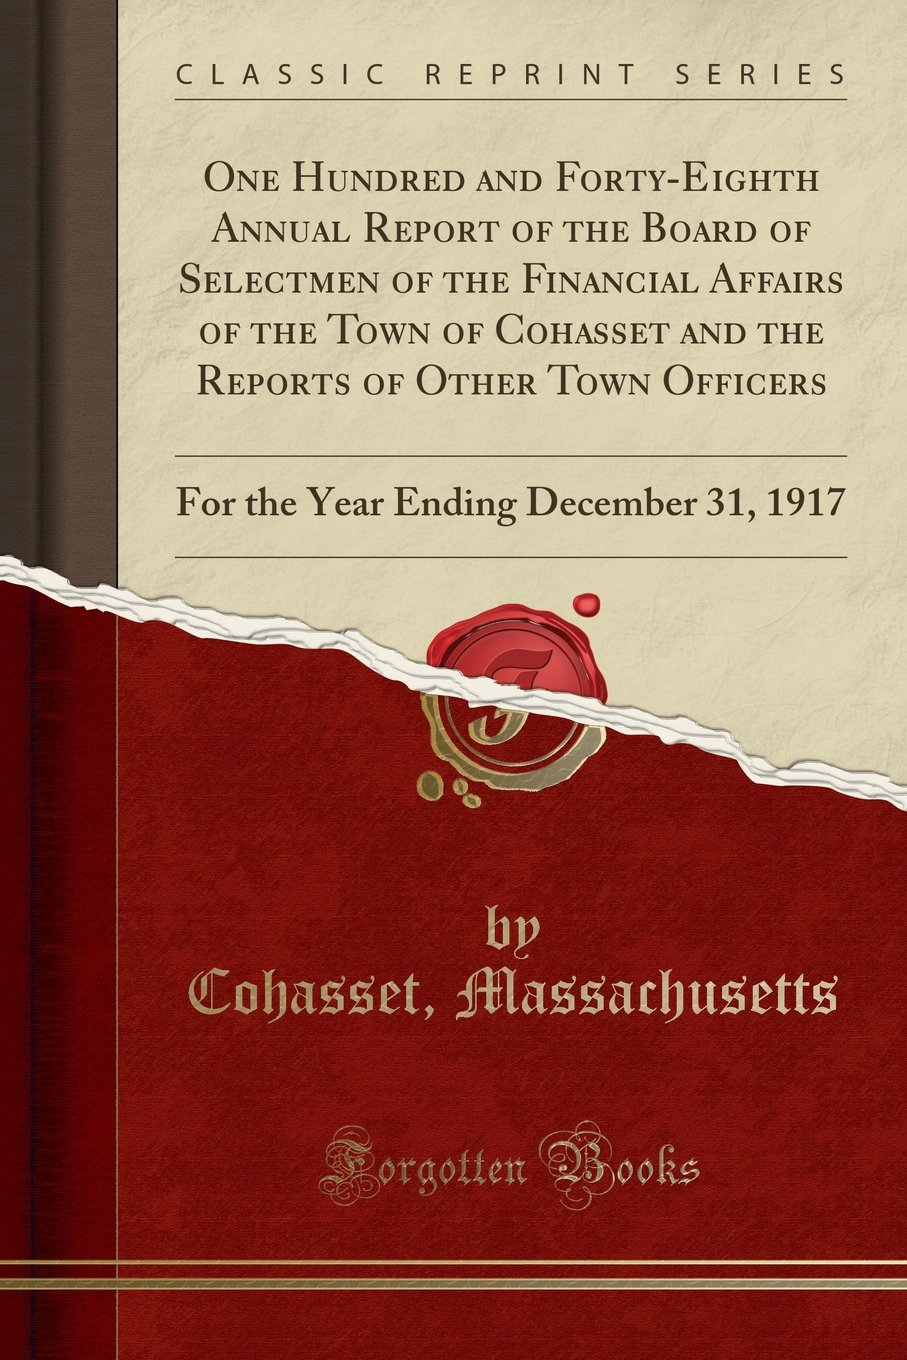 Download One Hundred and Forty-Eighth Annual Report of the Board of Selectmen of the Financial Affairs of the Town of Cohasset and the Reports of Other Town ... Ending December 31, 1917 (Classic Reprint) pdf